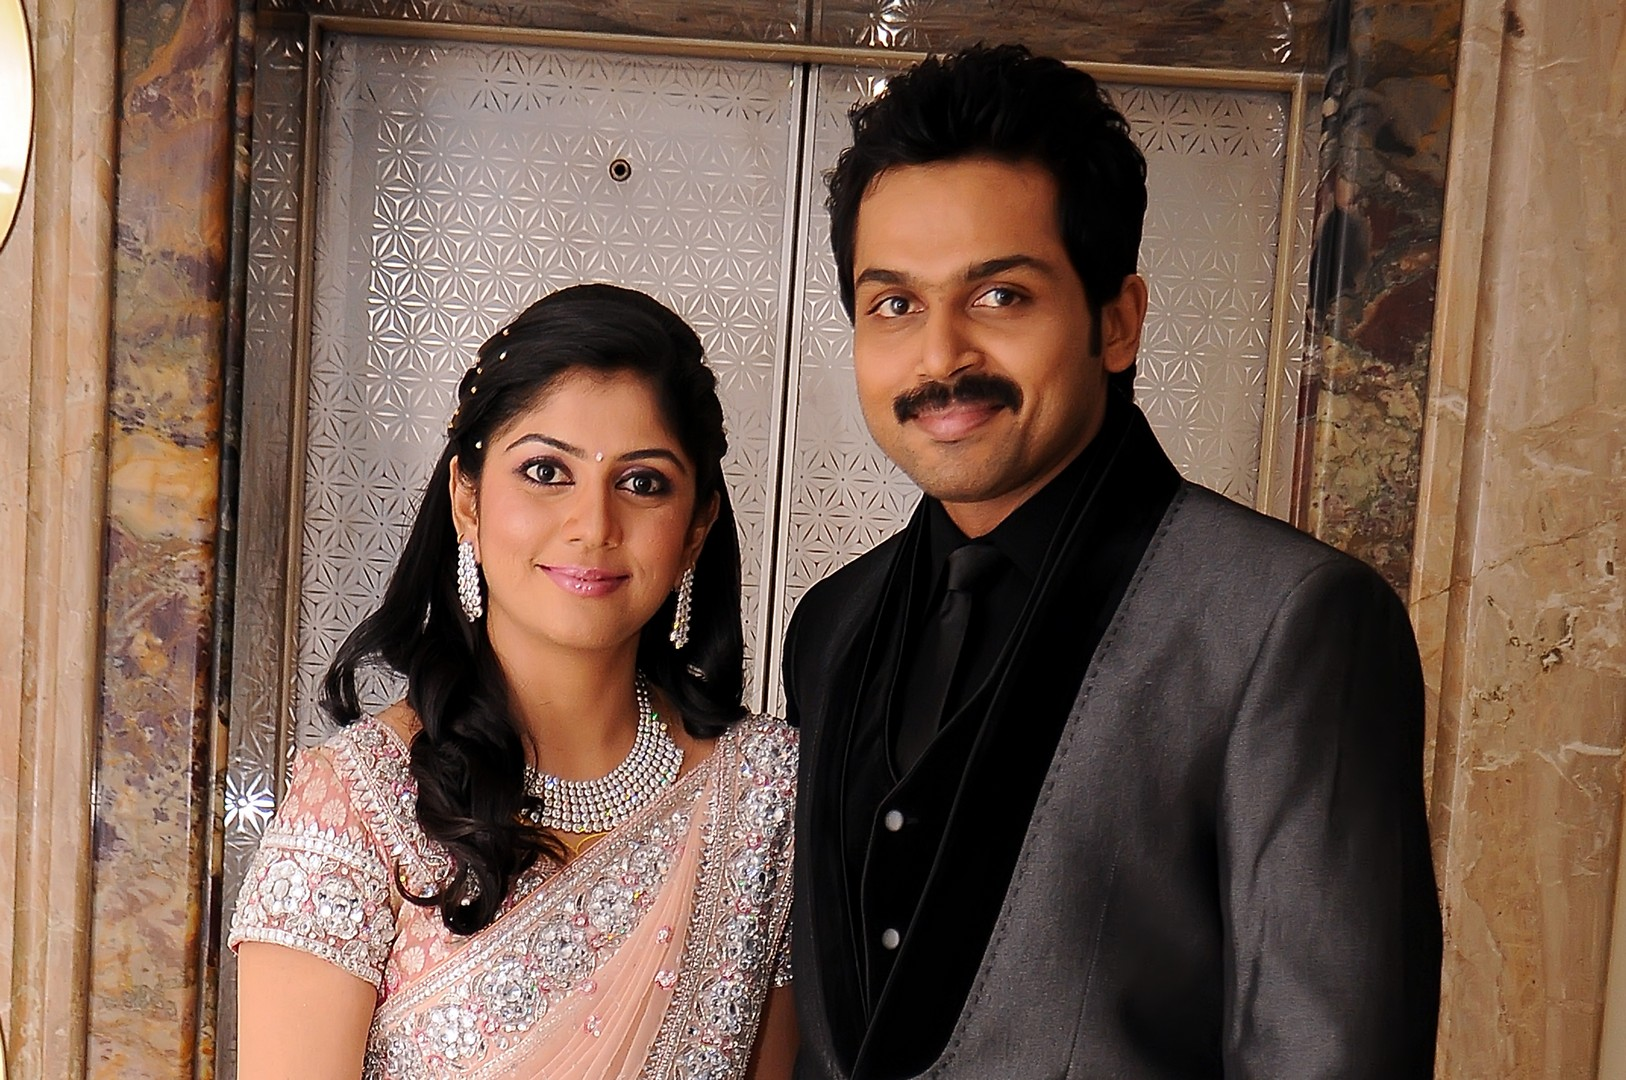 Actor Karthi reception, Karthi reception photos, Karthi pics, Karthi Rajini reception photos, Karthi Rajini pics, Karthi marriage wedding reception photos